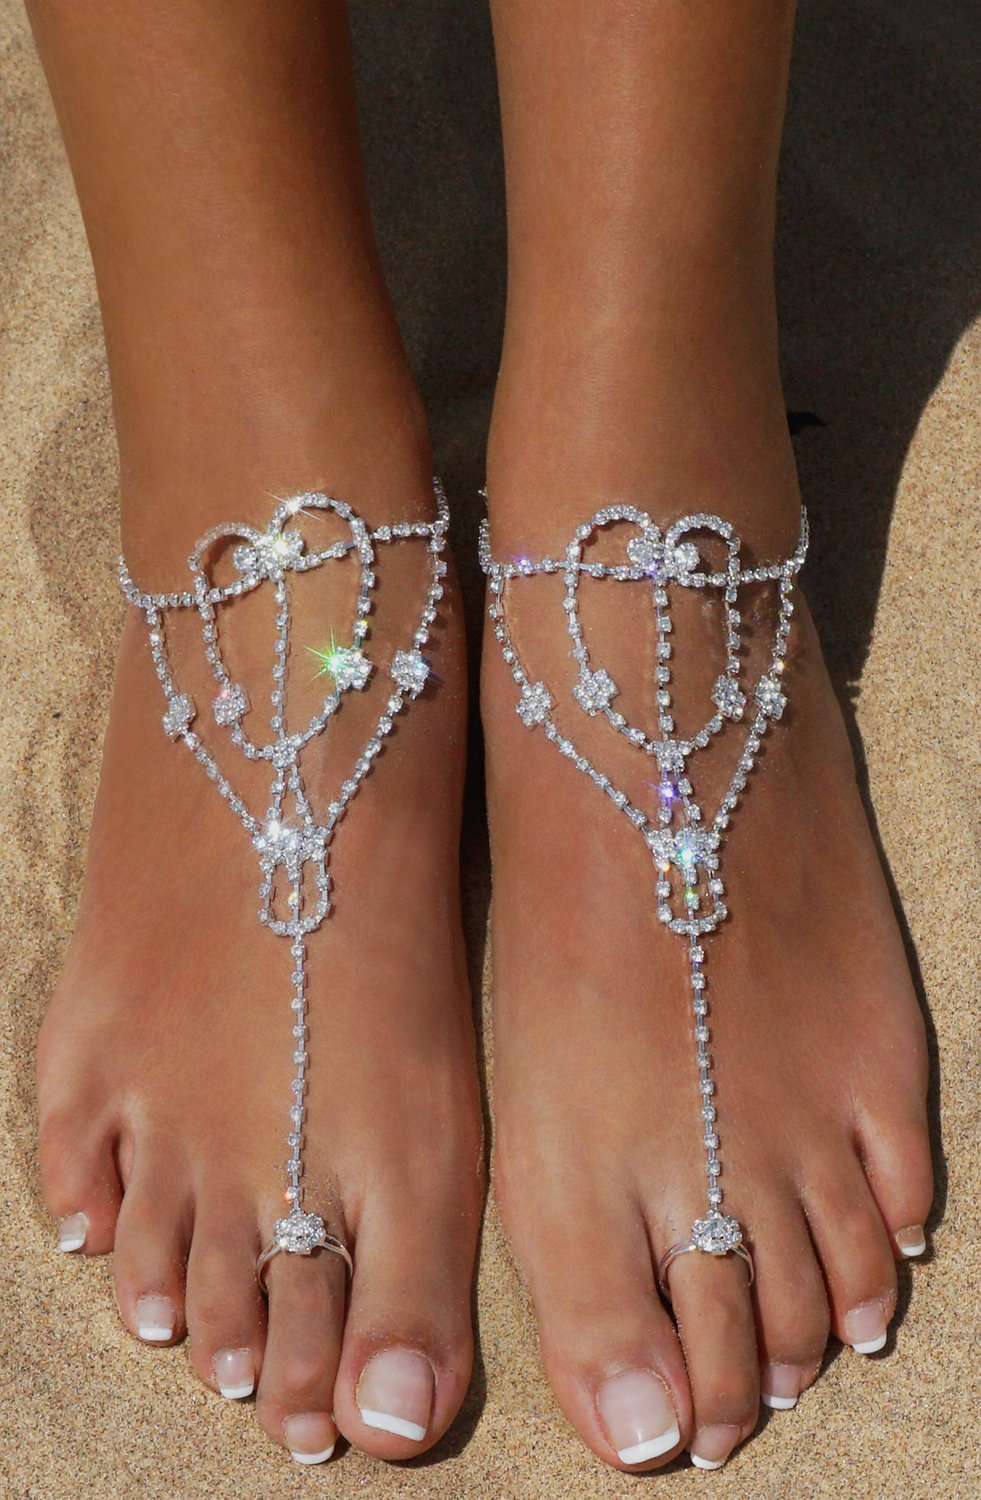 2 Pcs Barefoot Sandals with Rhinestone Toe Ring Beach Wedding Foot Jewelry Anklet Chain,Silver_Style 5 by Bellady (Image #4)